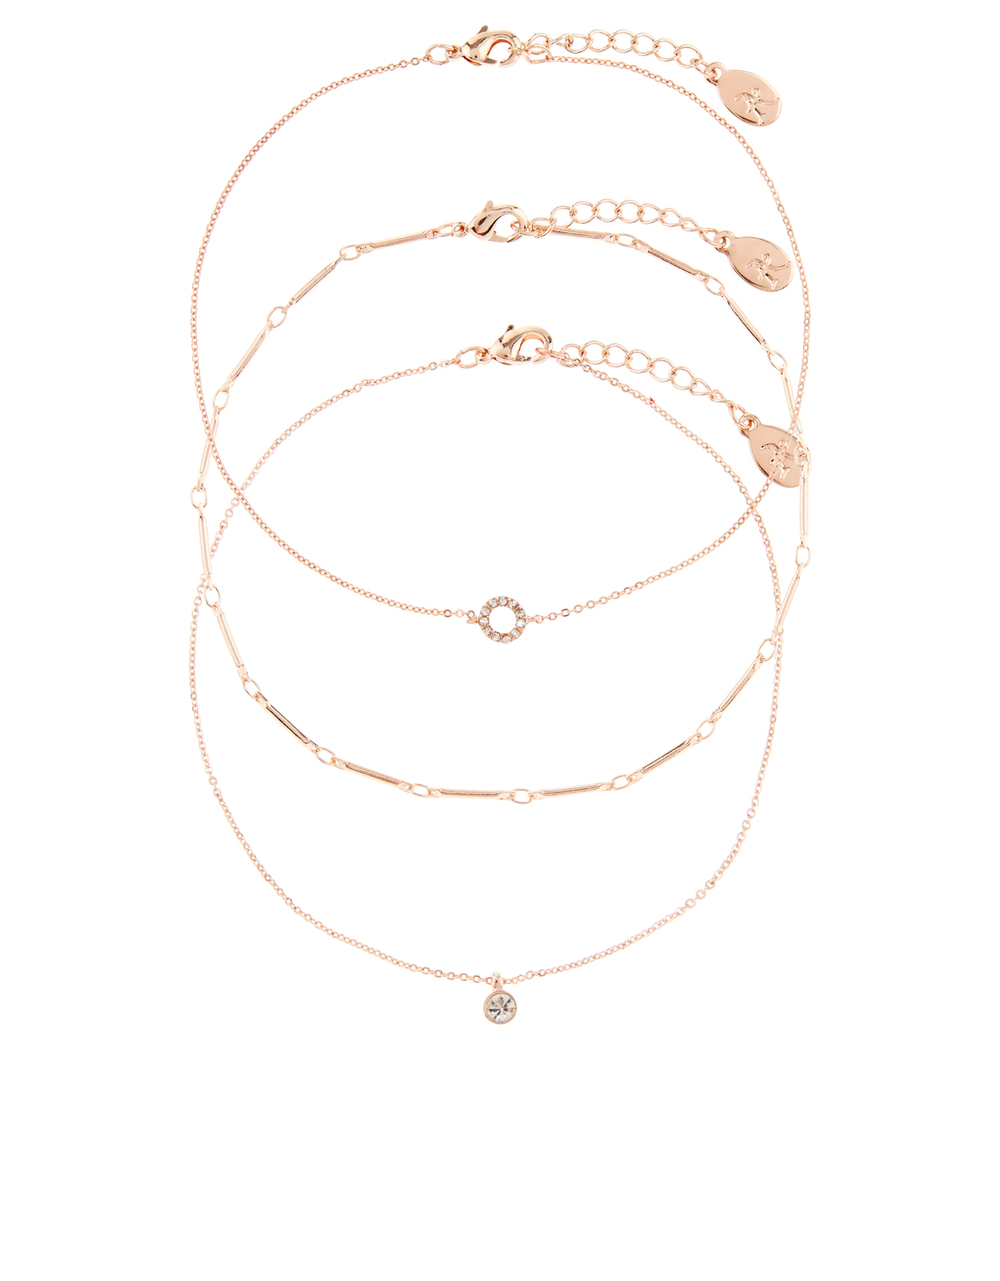 ACCESSORIZE 3 X ROSE GOLD DELICATE ANKLETS - £8